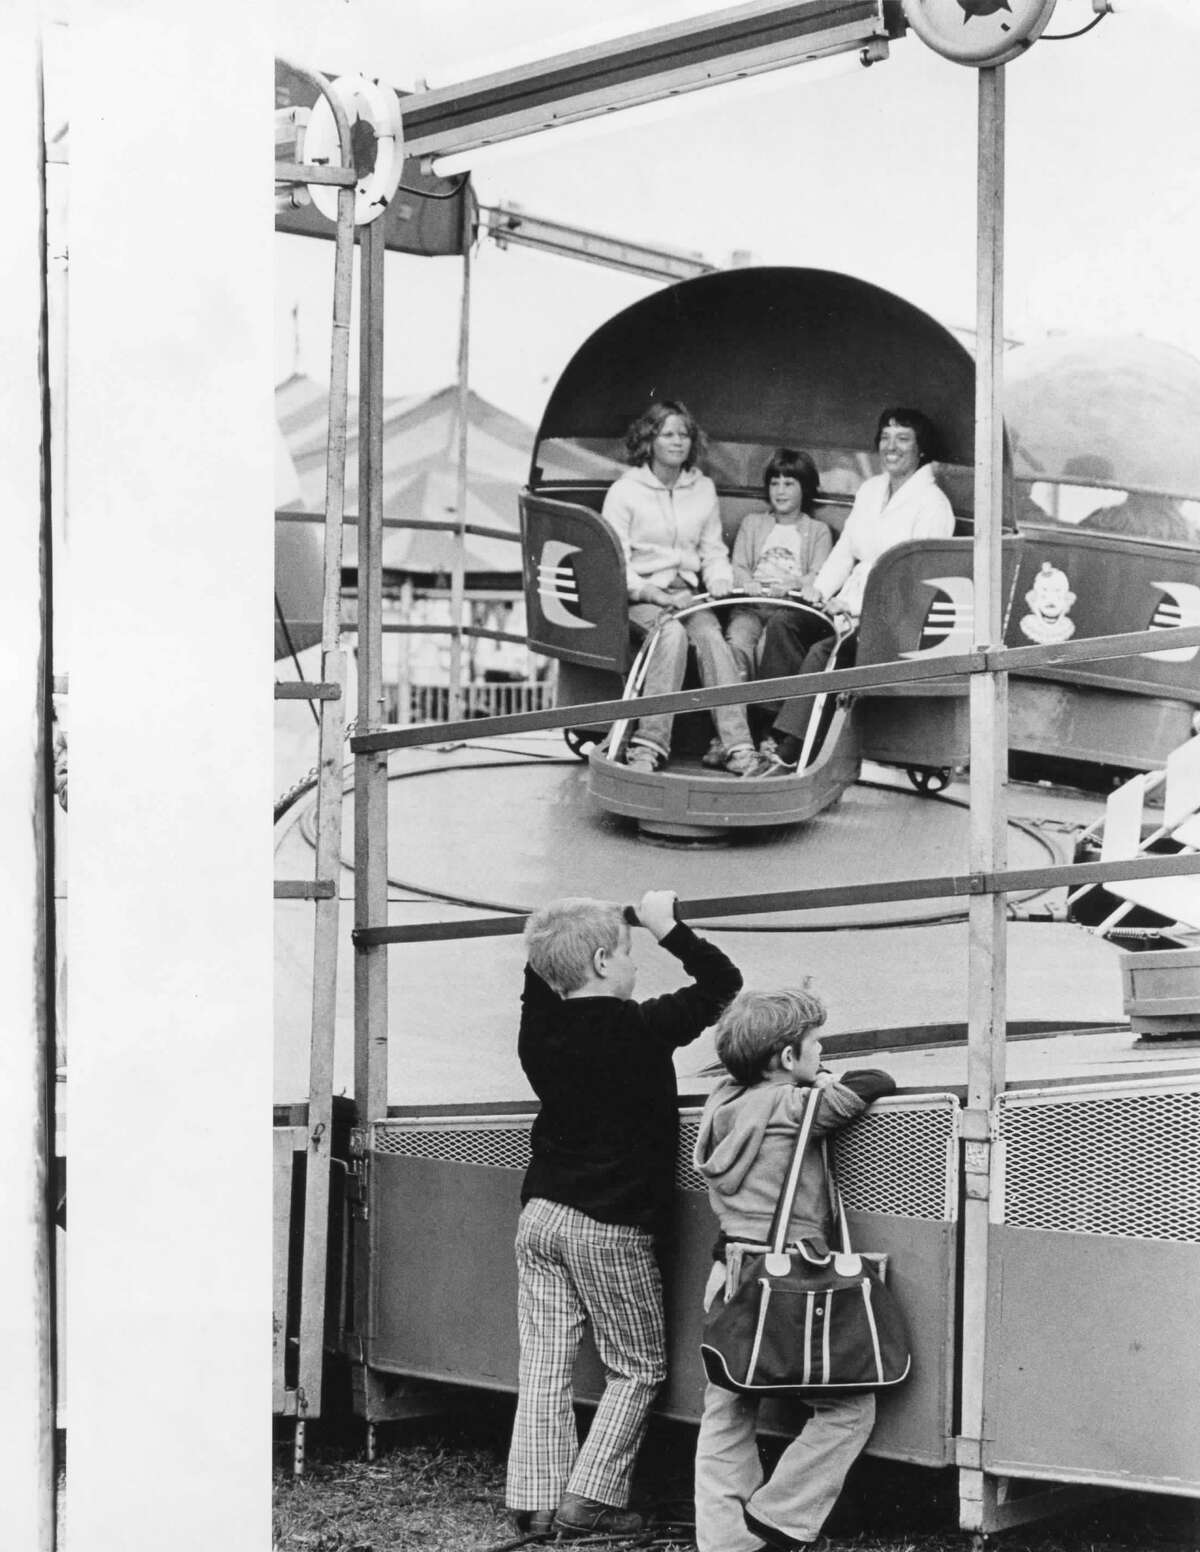 Michael and Charles Varner of Beaverton seem entranced with the tilting, whirling motion of one of the rides. August 1979